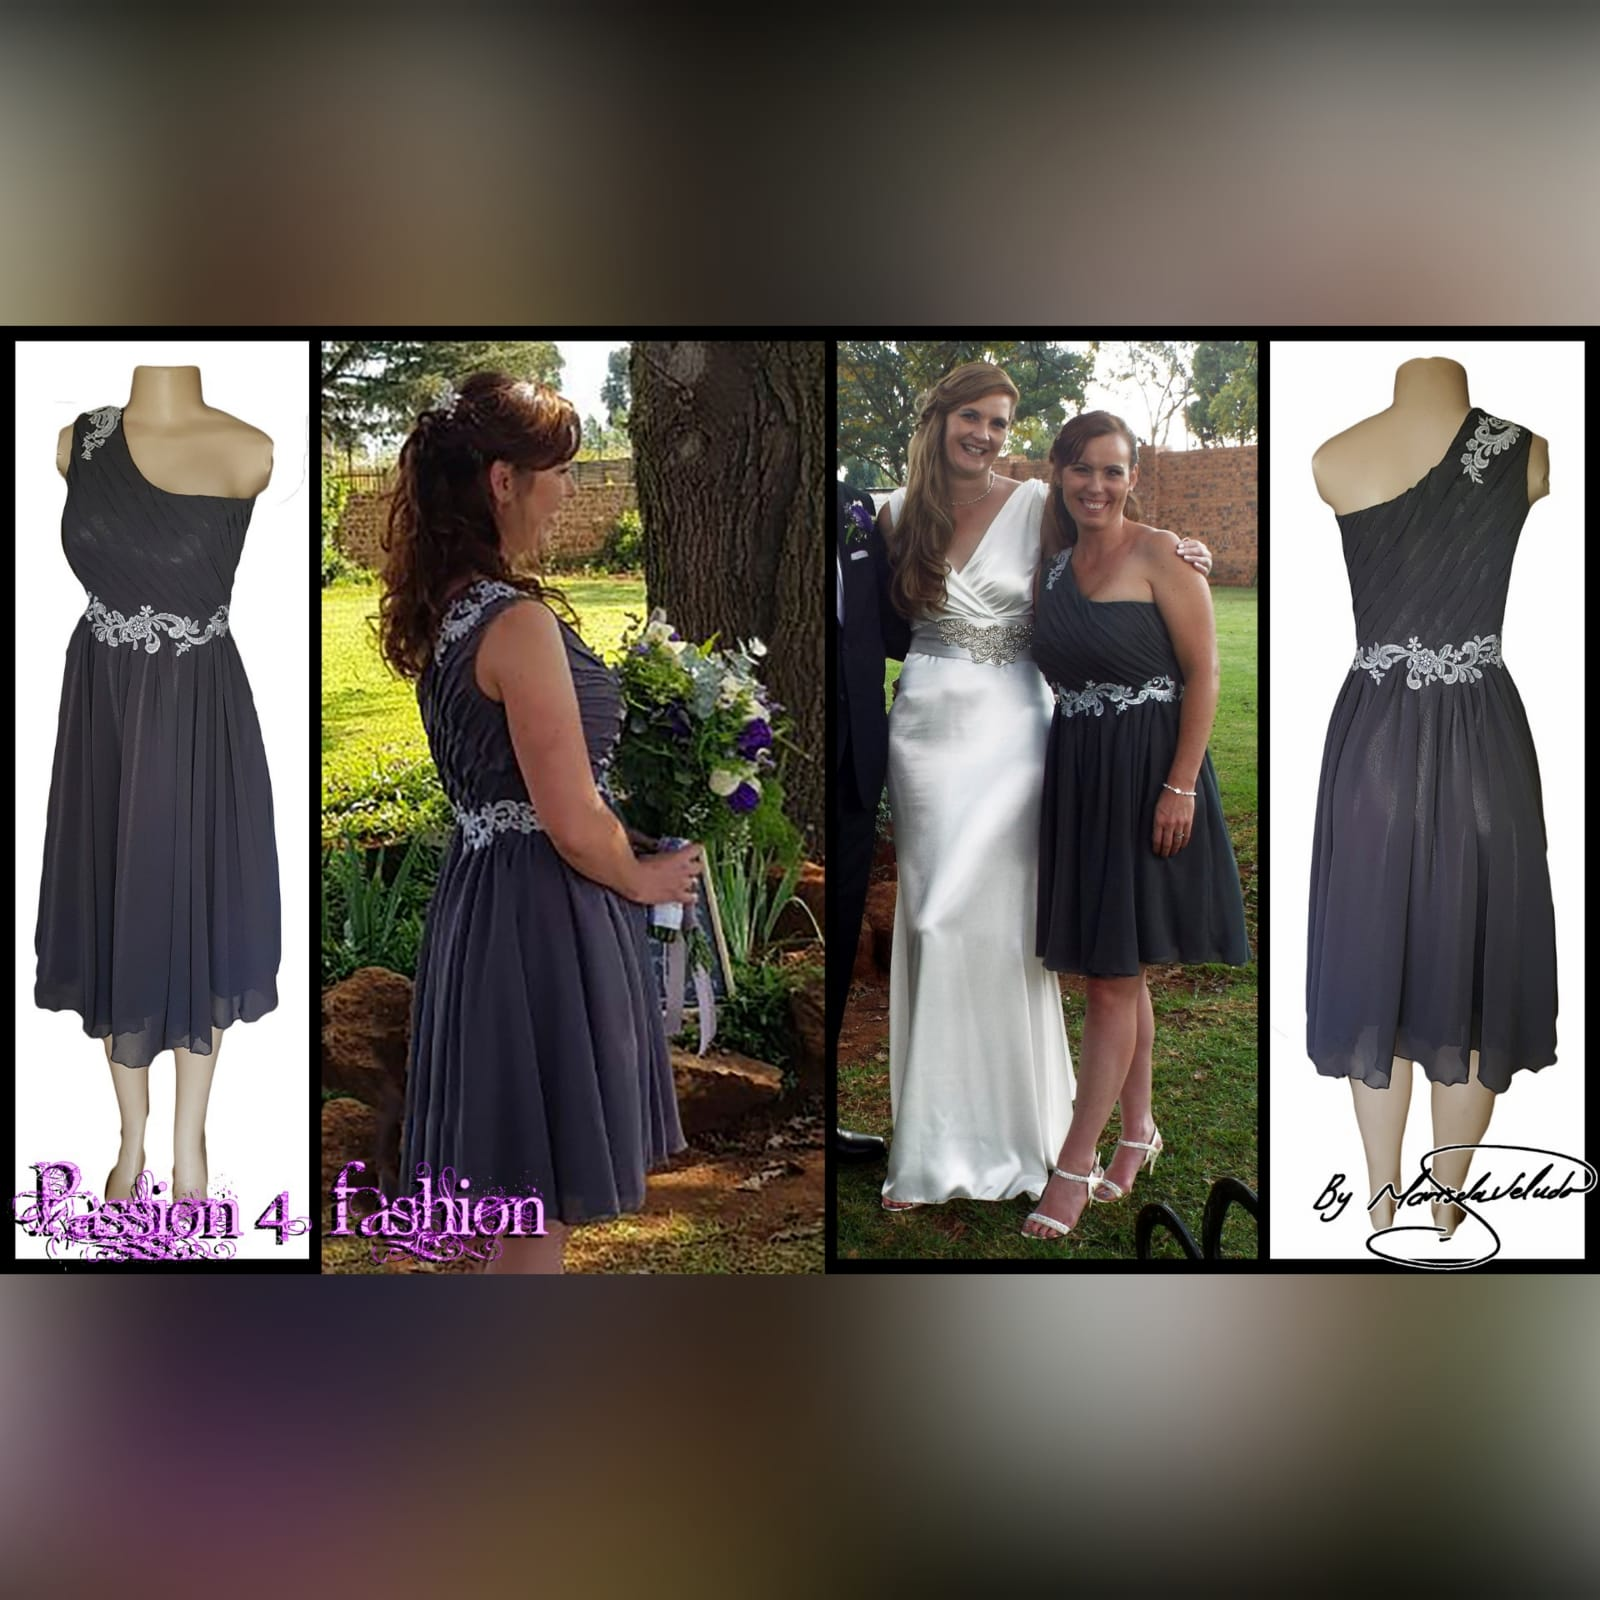 Grey & silver short maid of honour dress 4 grey & silver single shoulder knee length maid of honour dress with a ruched bodice